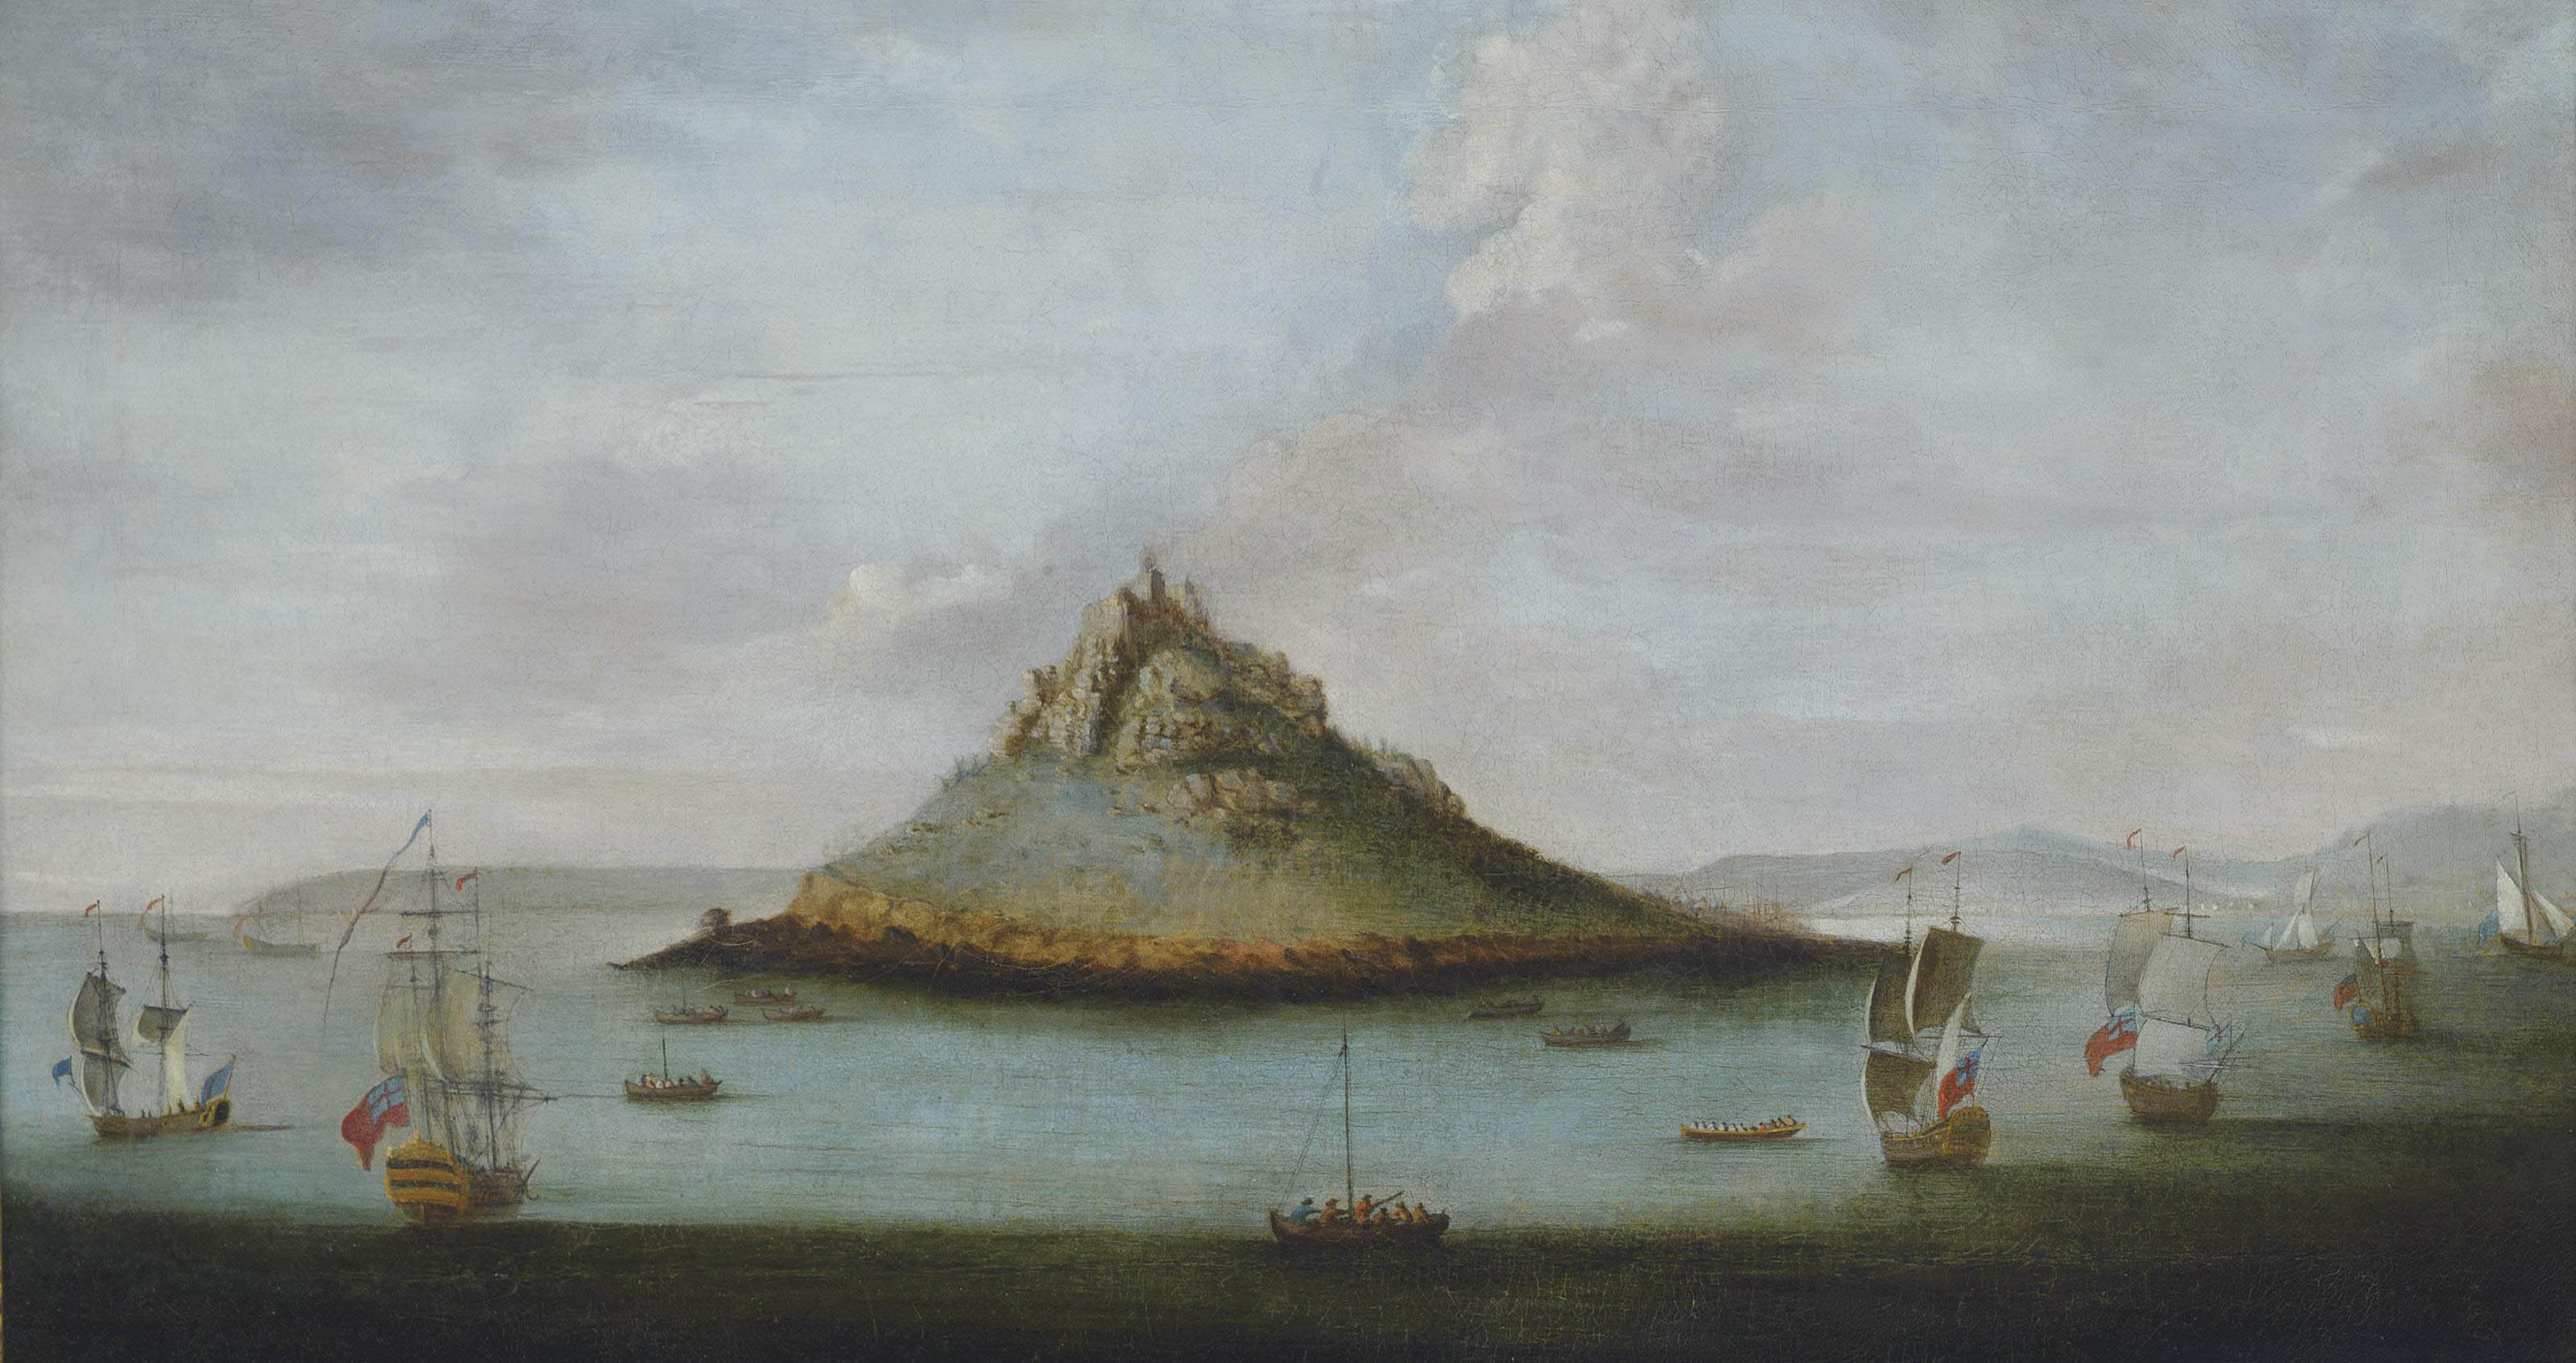 An English squadron off St. Michael's Mount, Cornwall